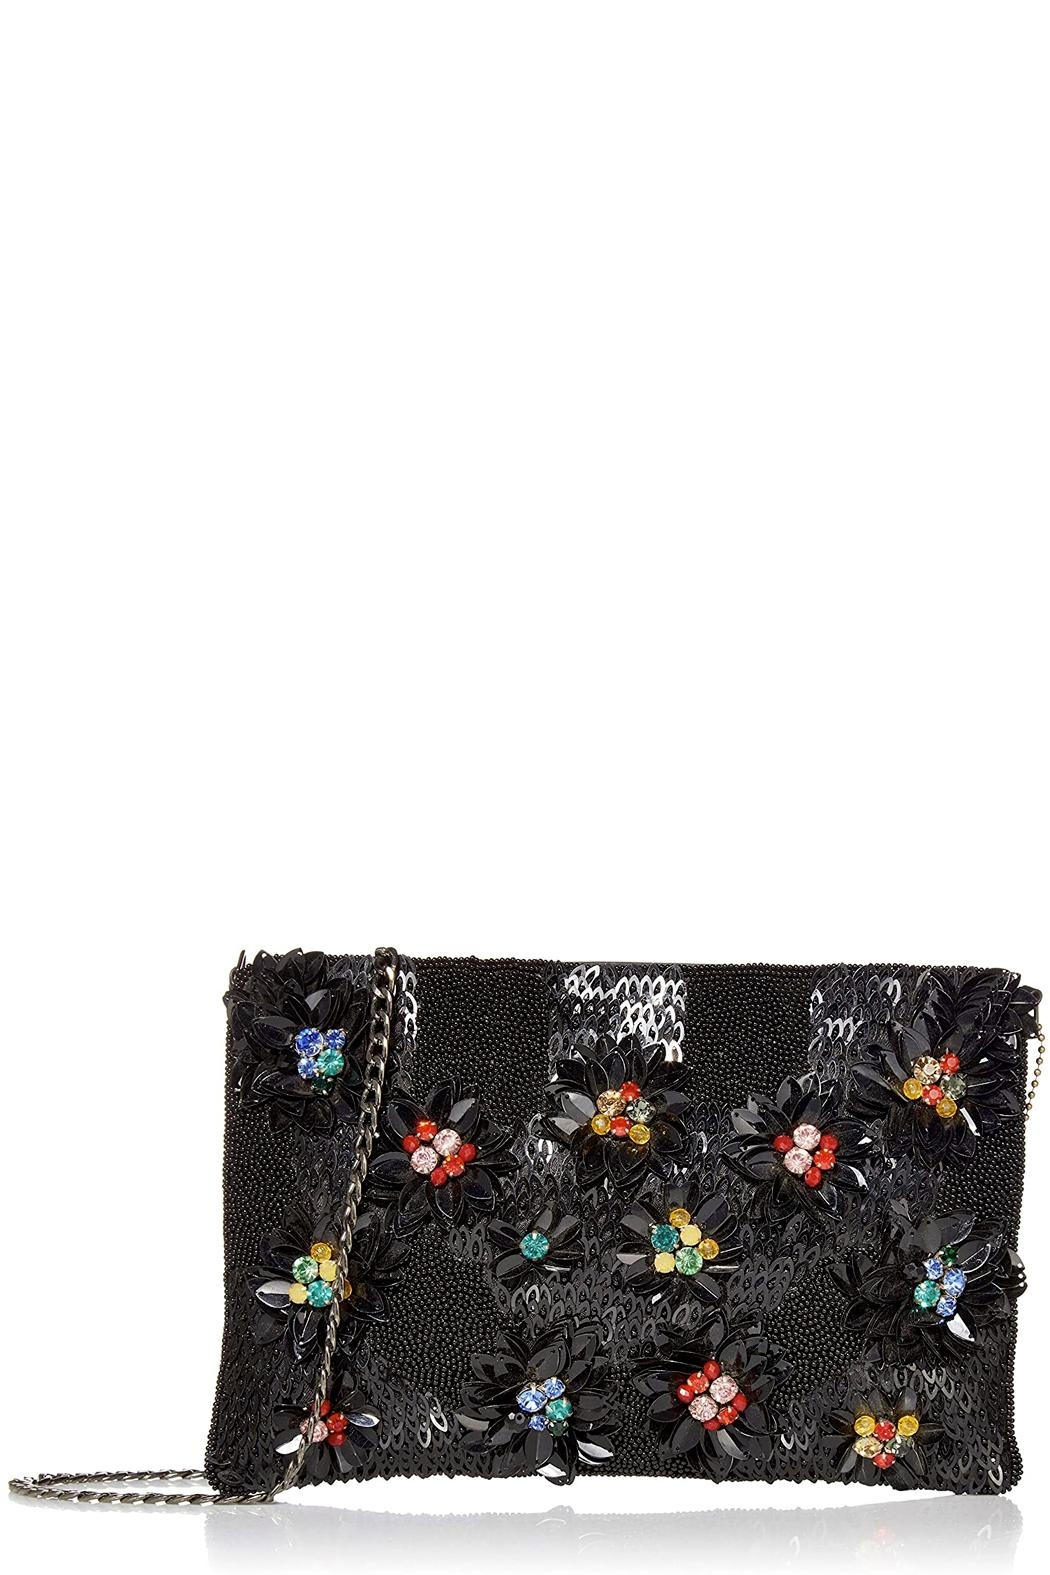 Mary Frances Floral Lux Crossbody-Clutch - Main Image